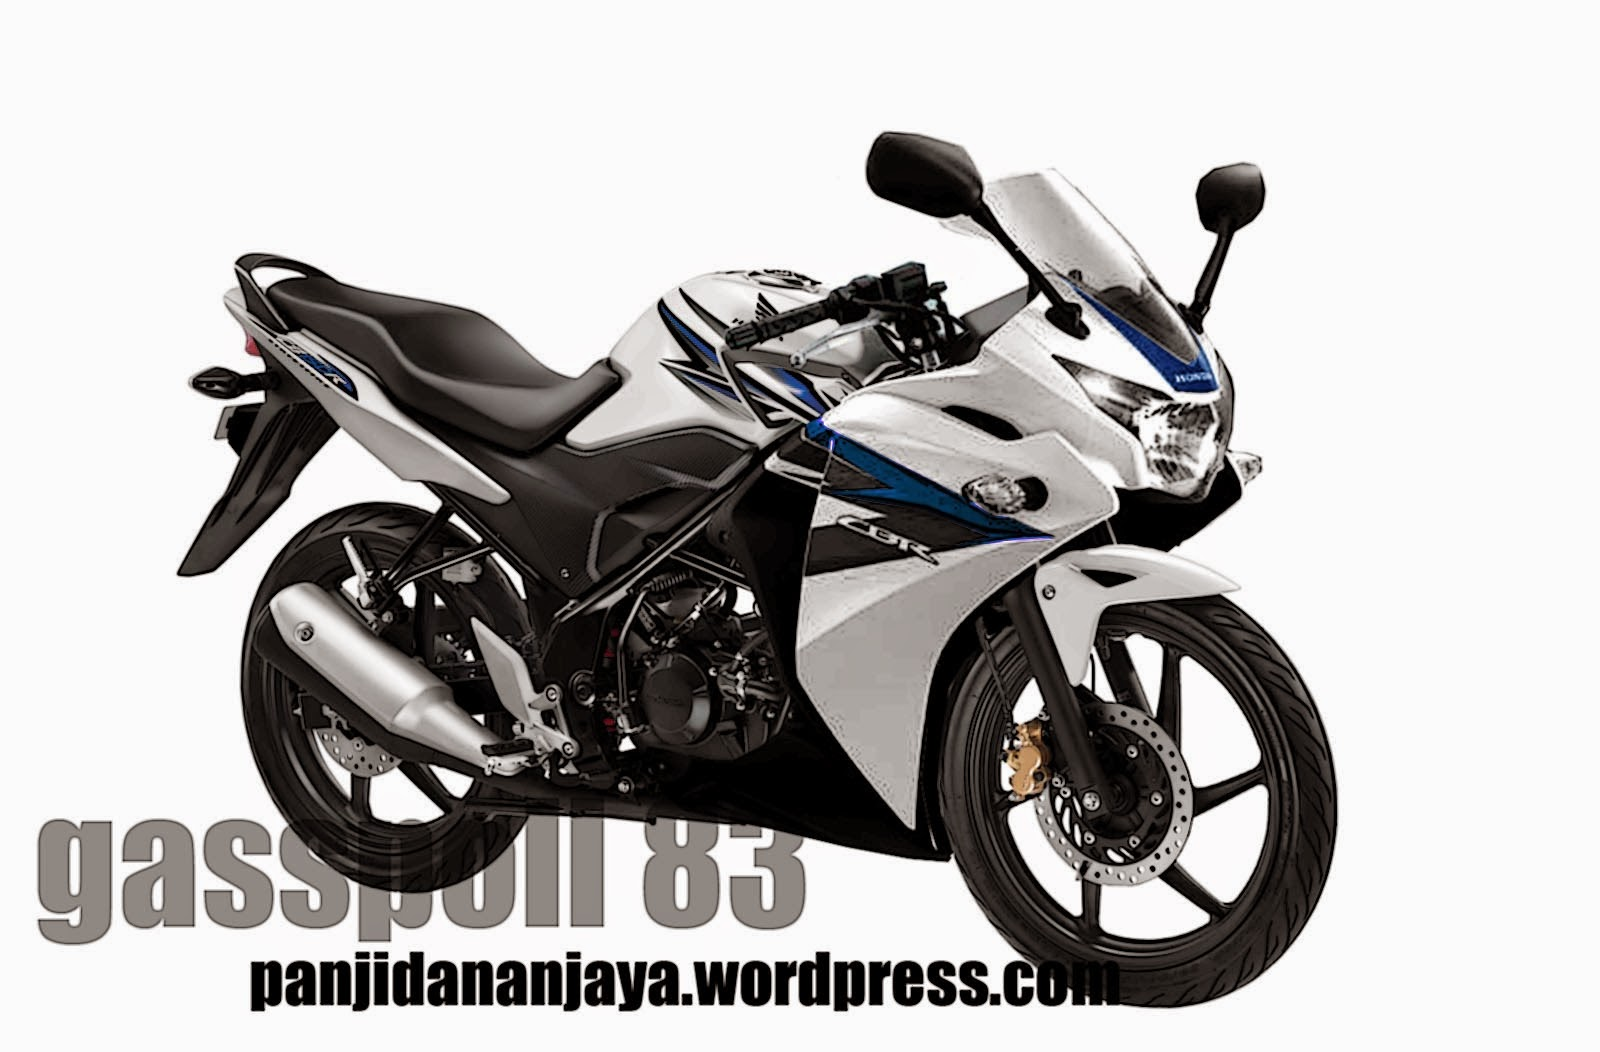 Modifikasi Striping Cb150r Terbaru